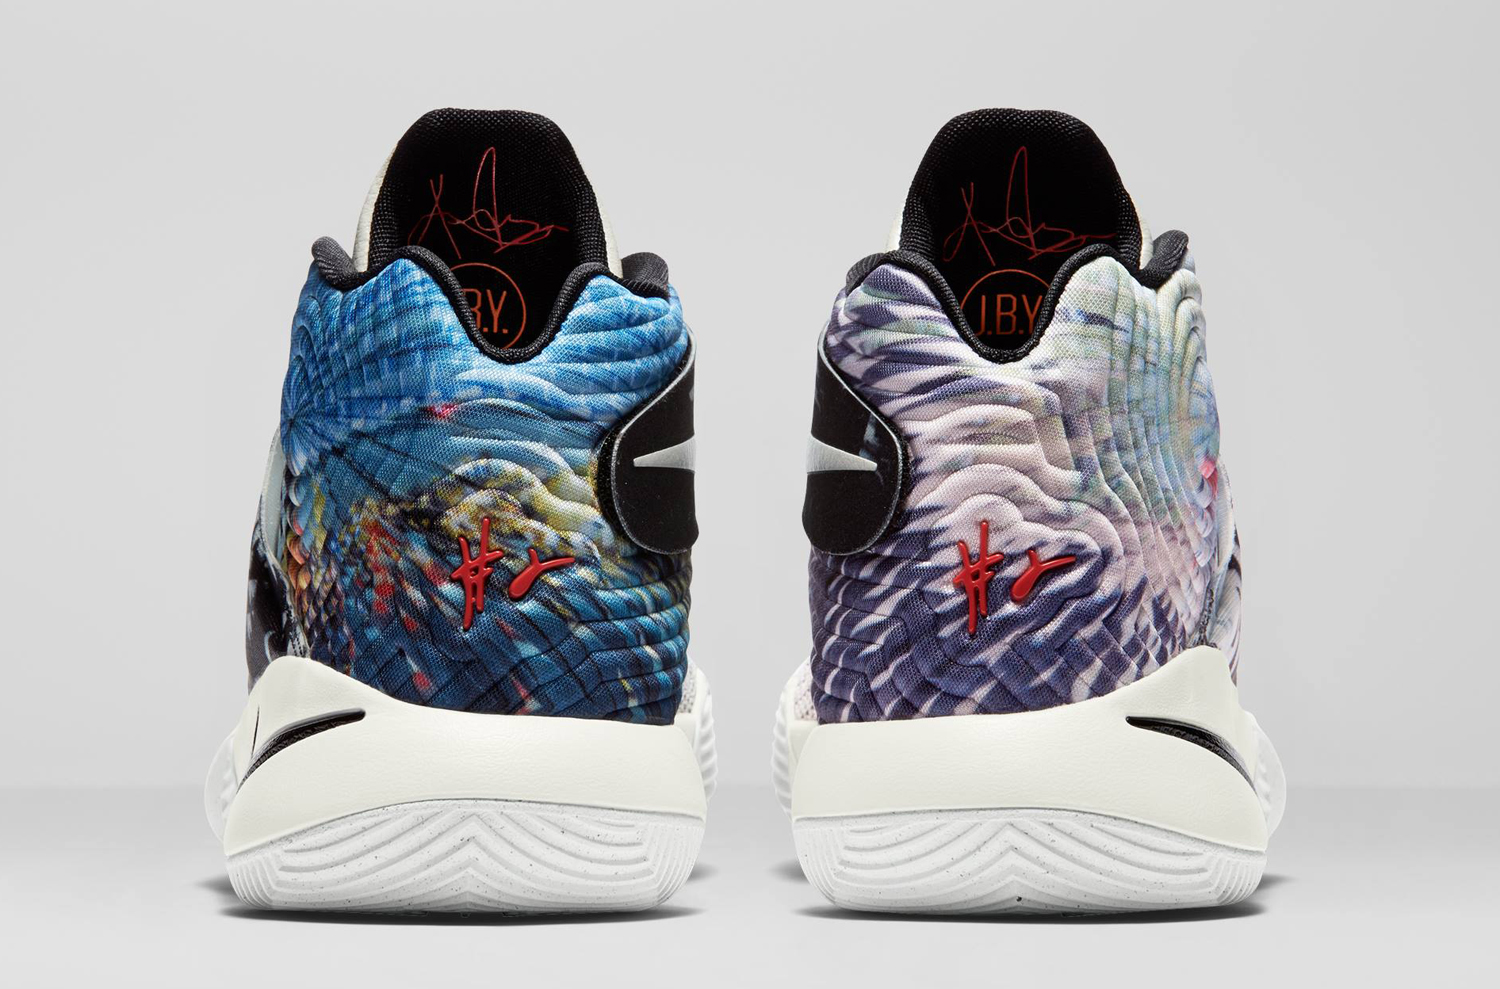 Chaussure Nike Kyrie 2